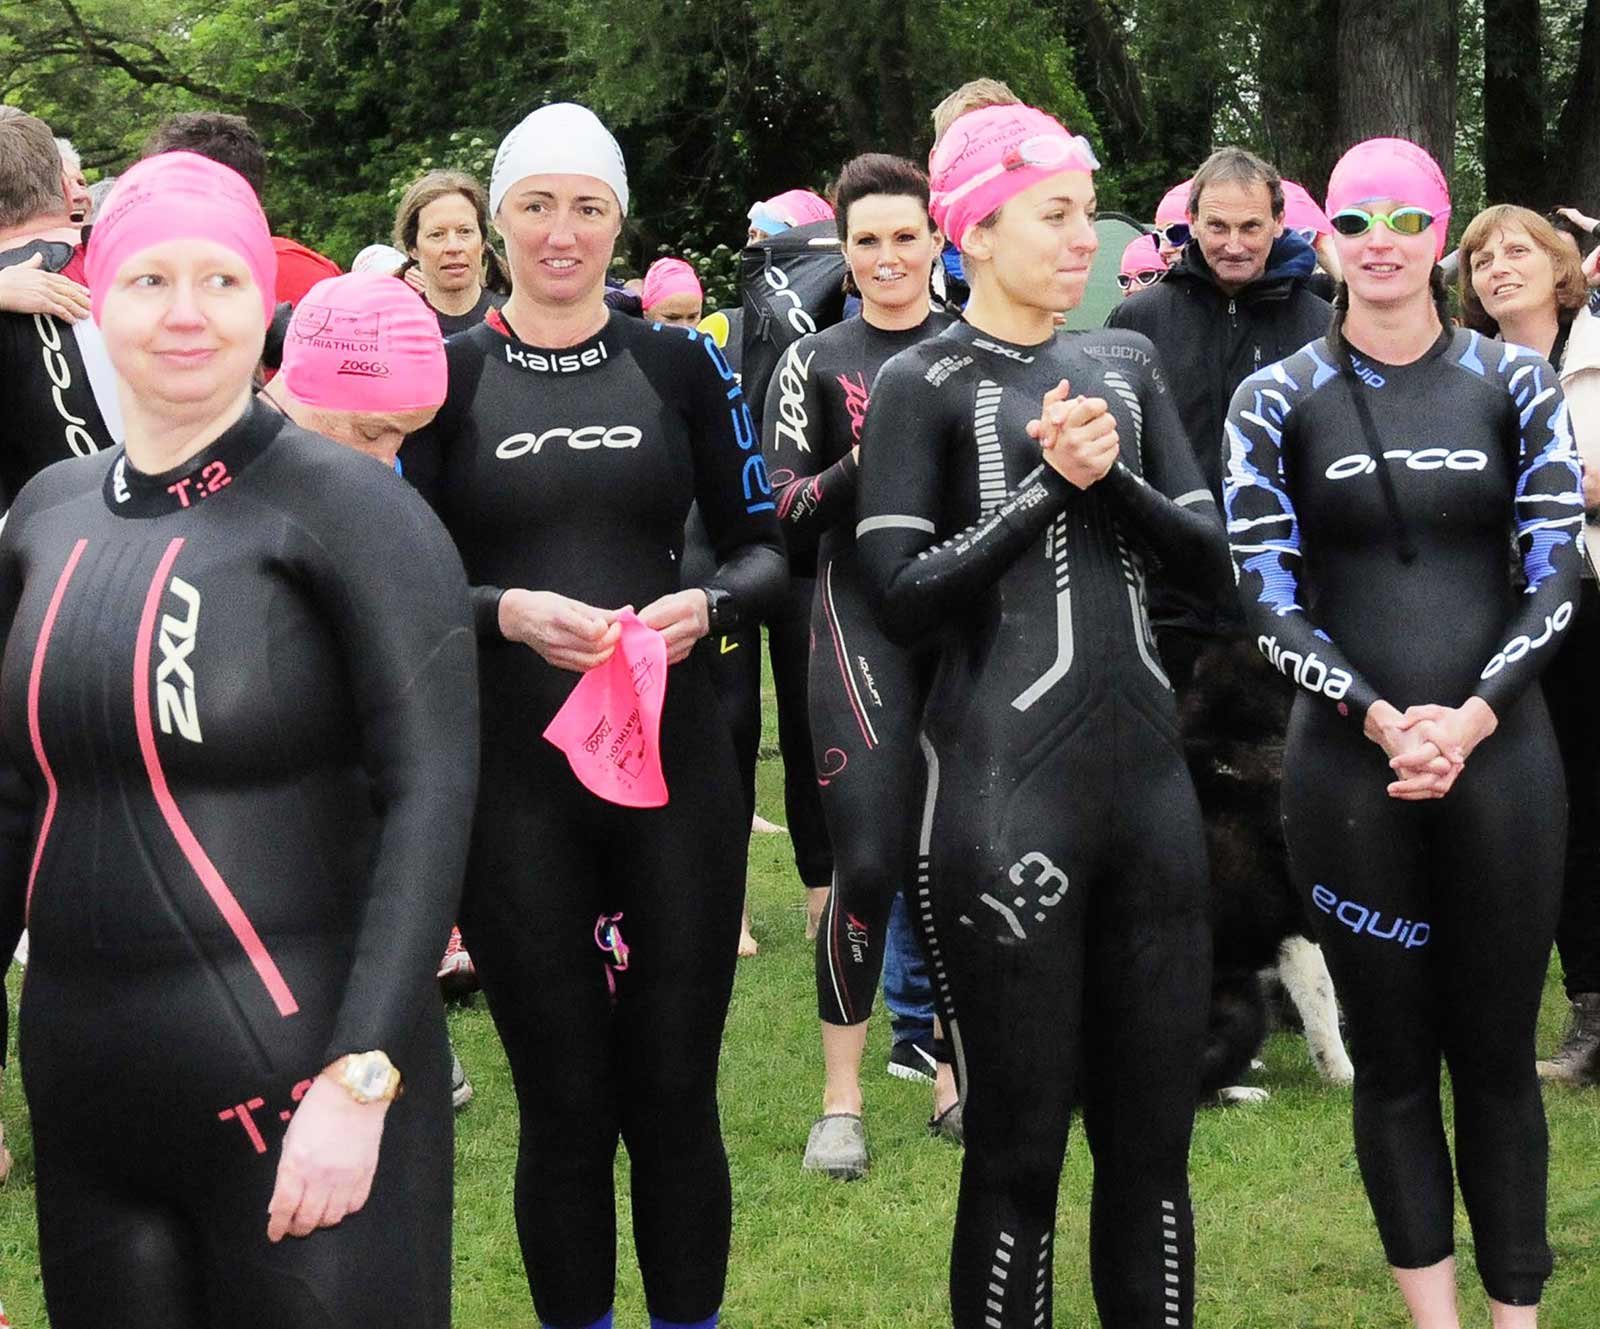 Triathlon Event Swindon Wiltshire